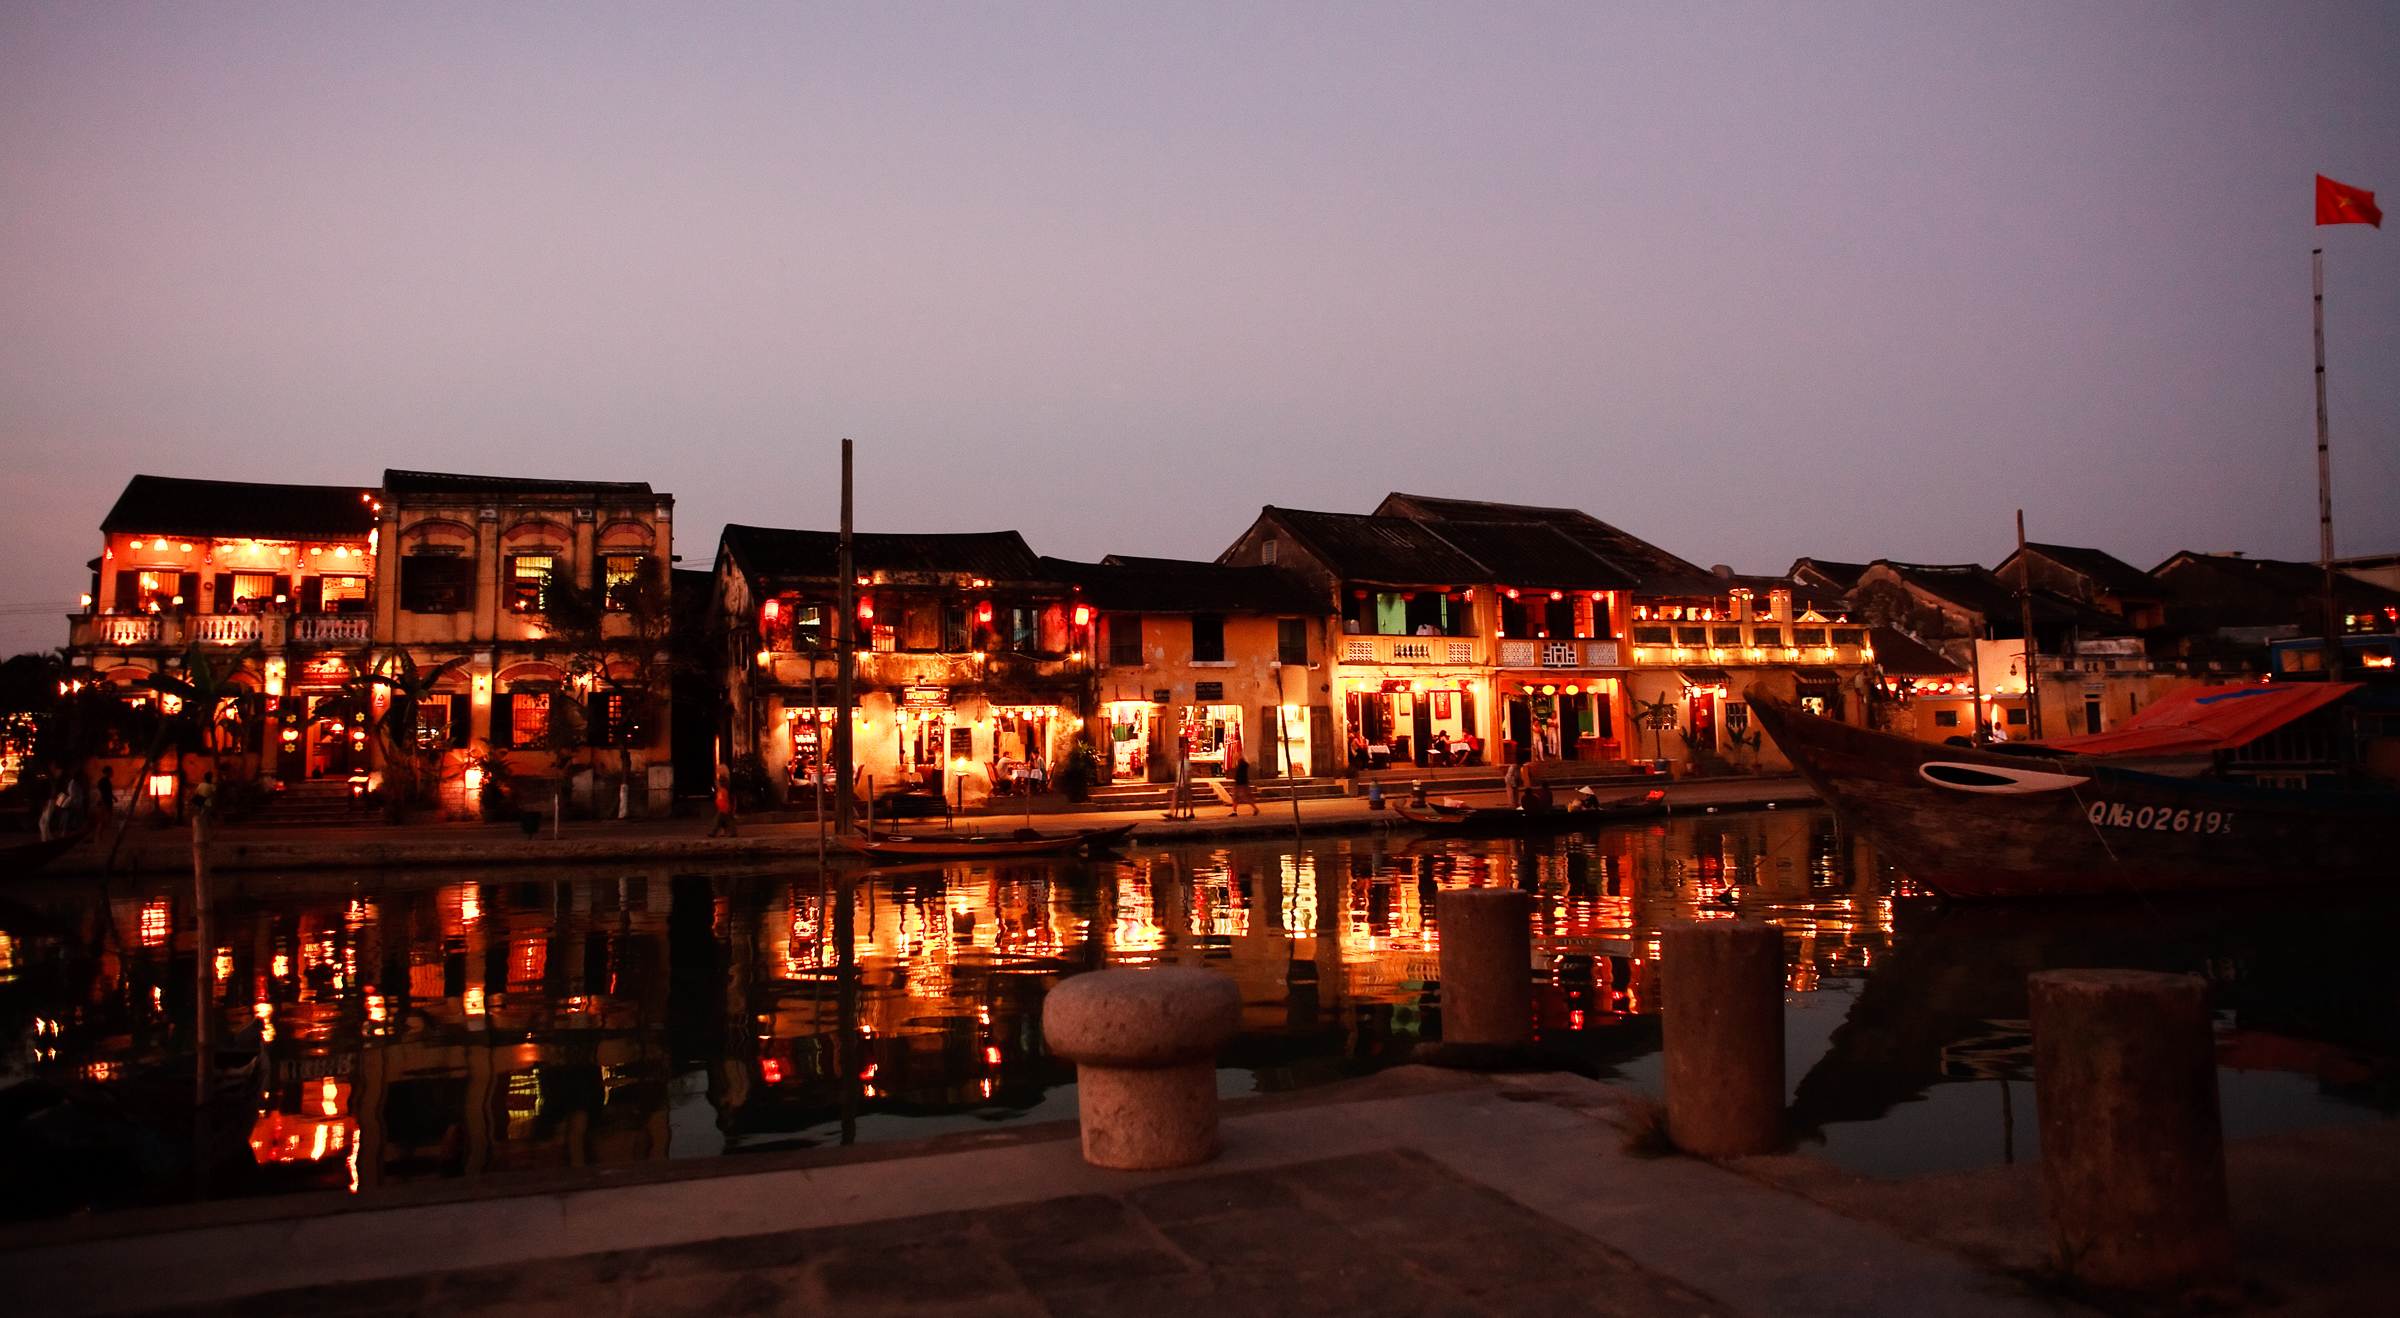 hoi an Travellers guide on how to get from hue to hoi an by train and bus.